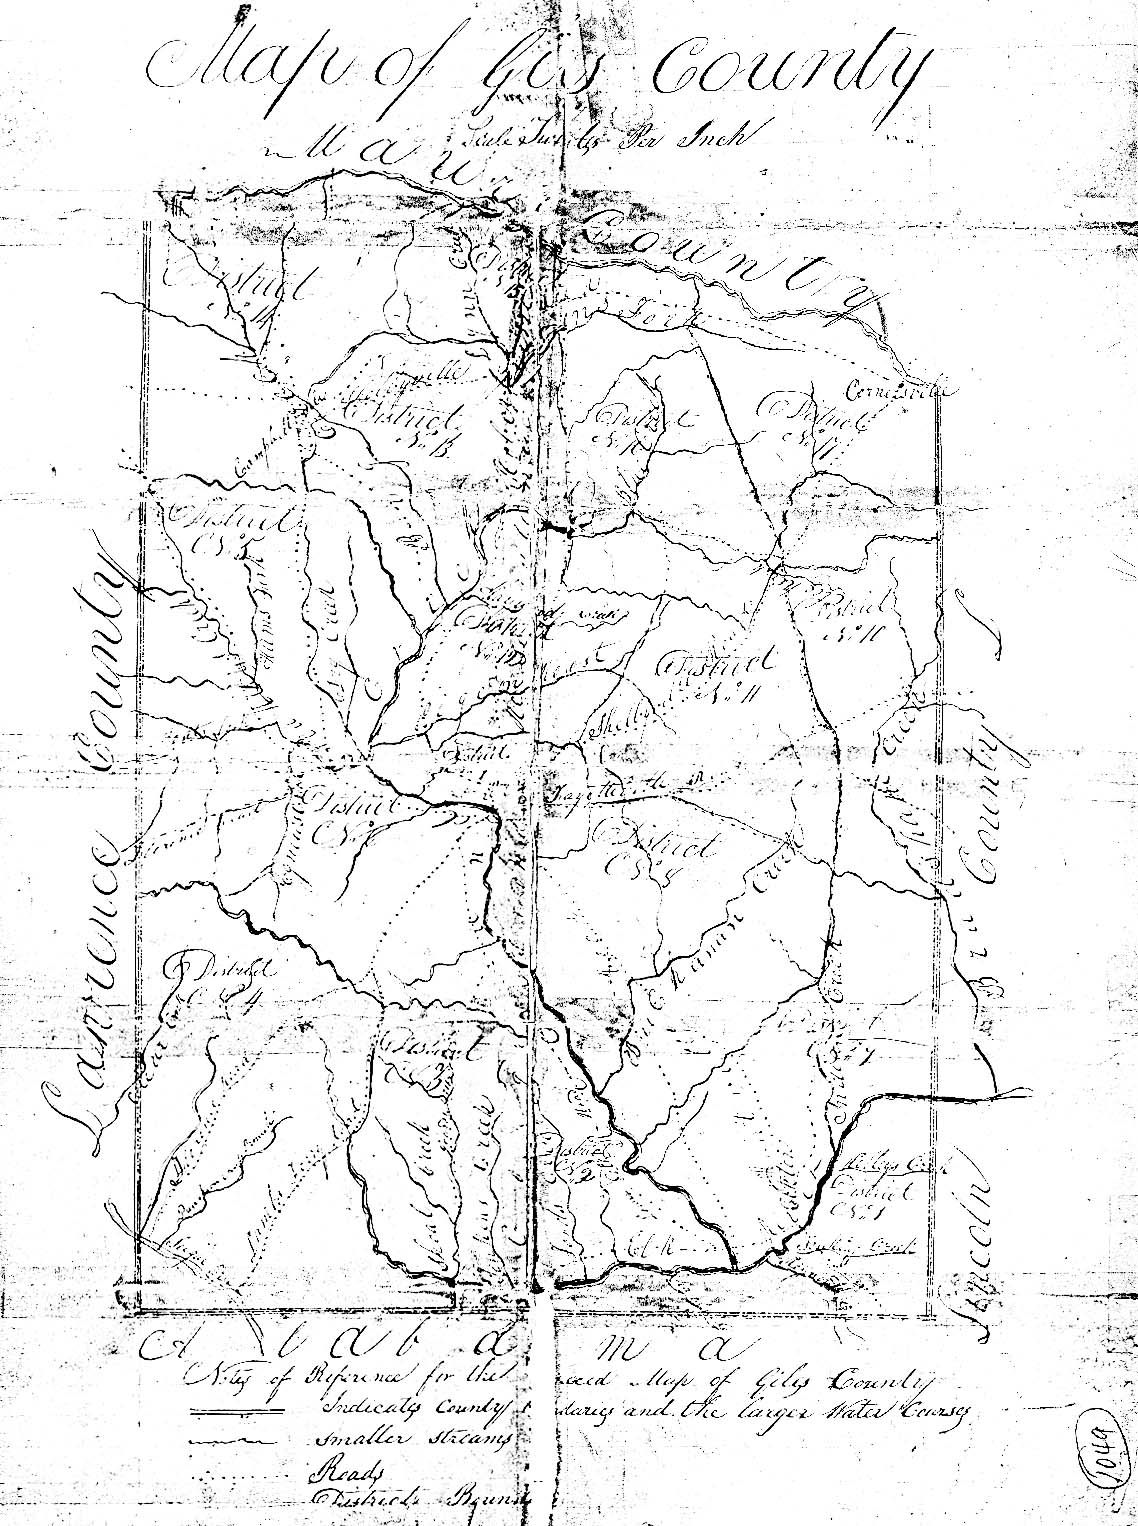 Giles County, Tennessee Civil Districts, 1836